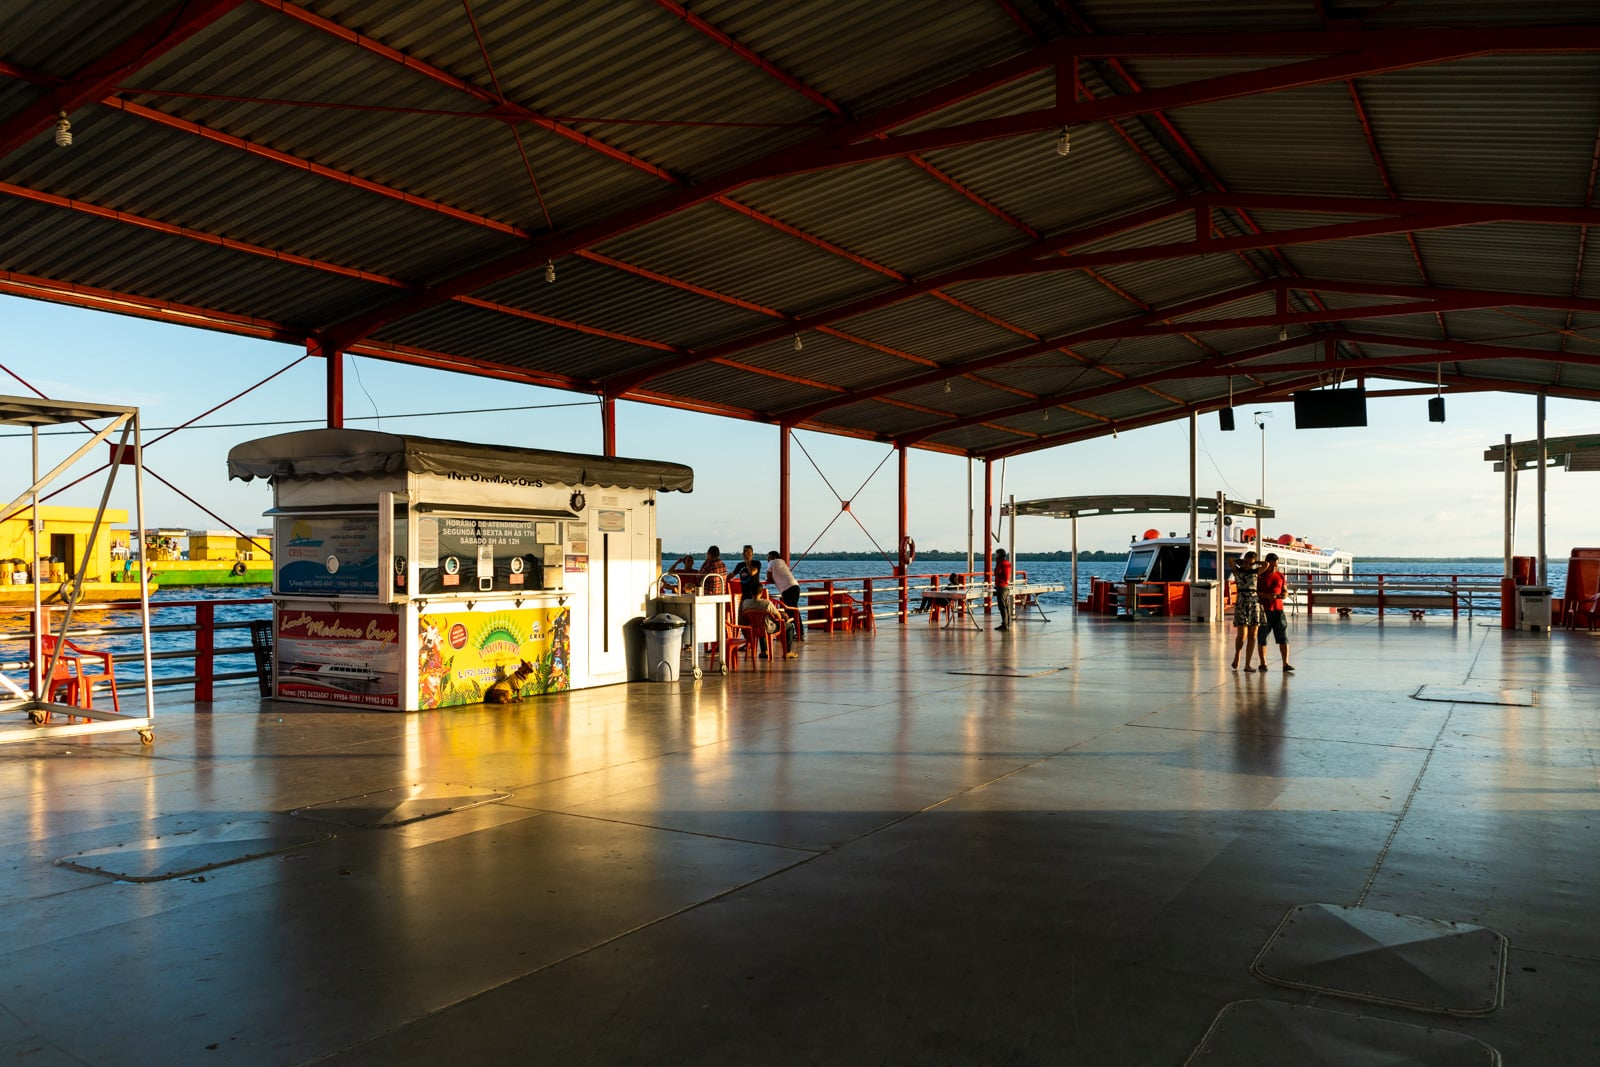 Taking the fast boat from Manaus, Brazil to Leticia, Colombia - Terminal Ajato ticketing booth - Lost With Purpose travel blog